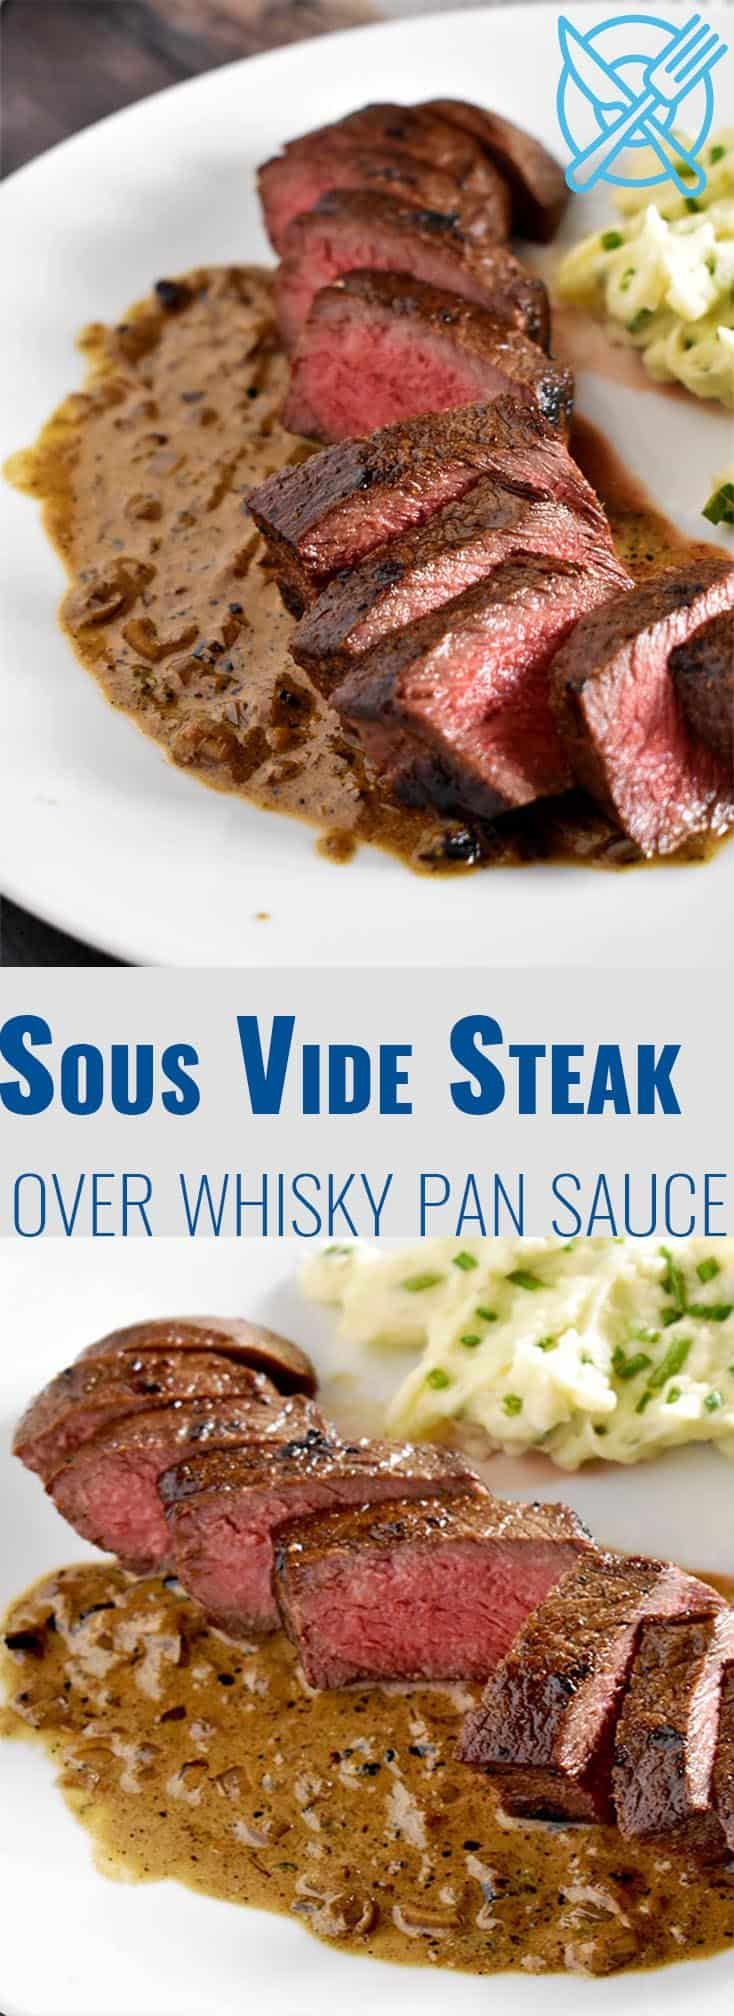 Photo of Sous Vide Steak Recipe with Whiskey Pan Sauce | Nerd Chefs